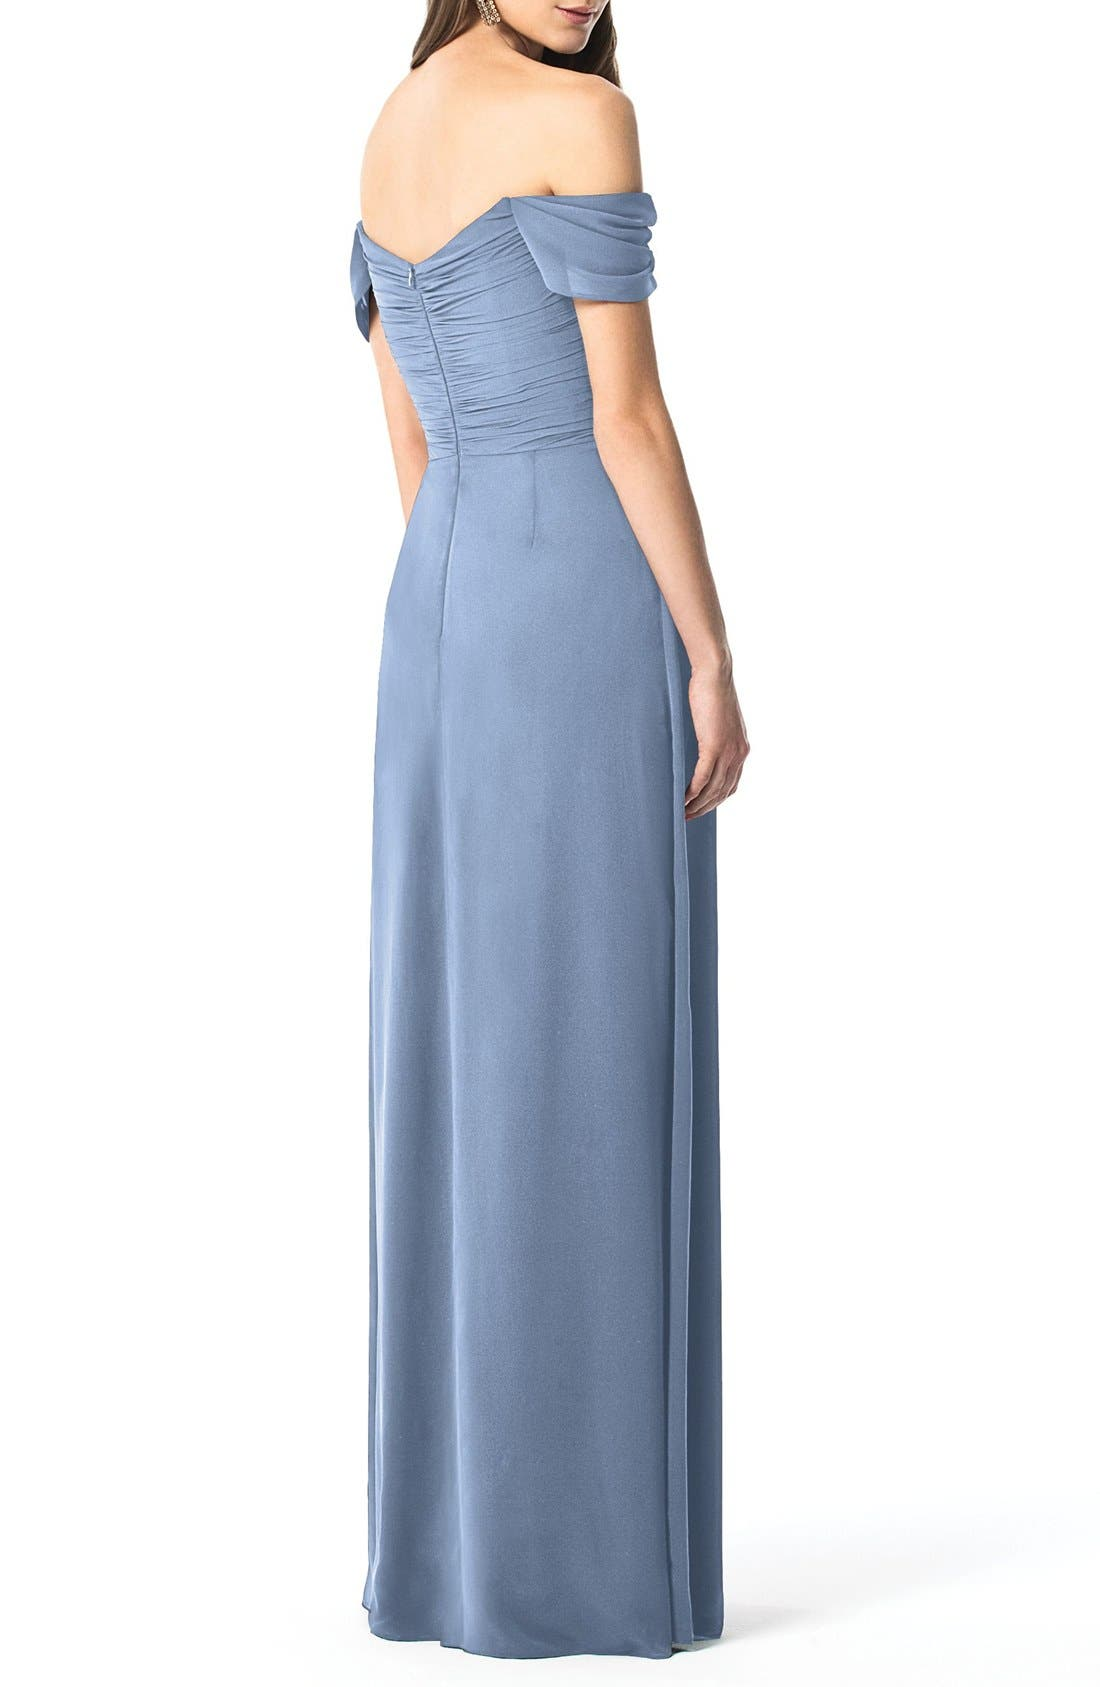 DESSY COLLECTION, Ruched Chiffon Gown, Alternate thumbnail 2, color, CLOUDY